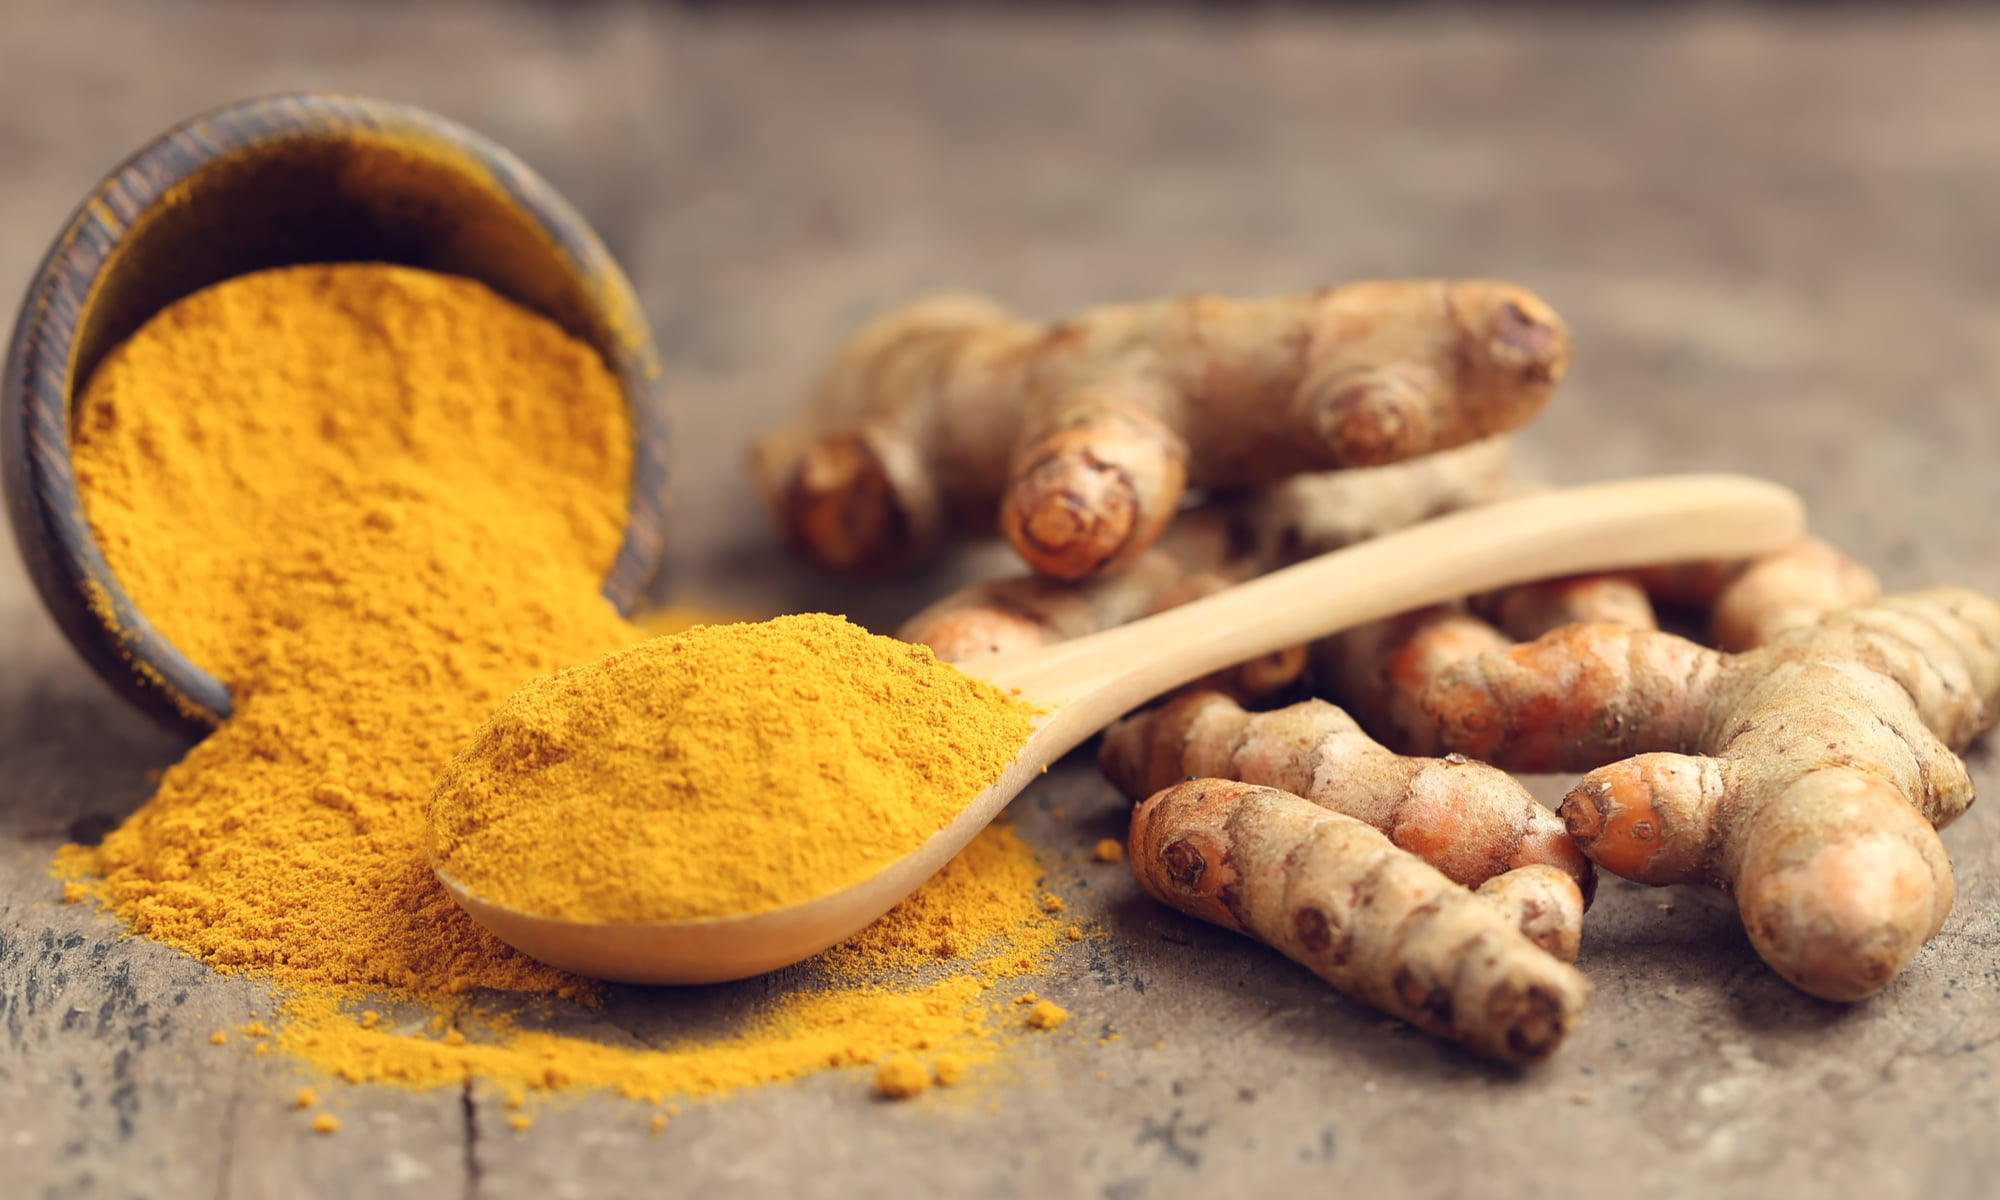 WHY IS TURMERIC ONE OF THE WORLD'S HEALTHIEST FOODS?